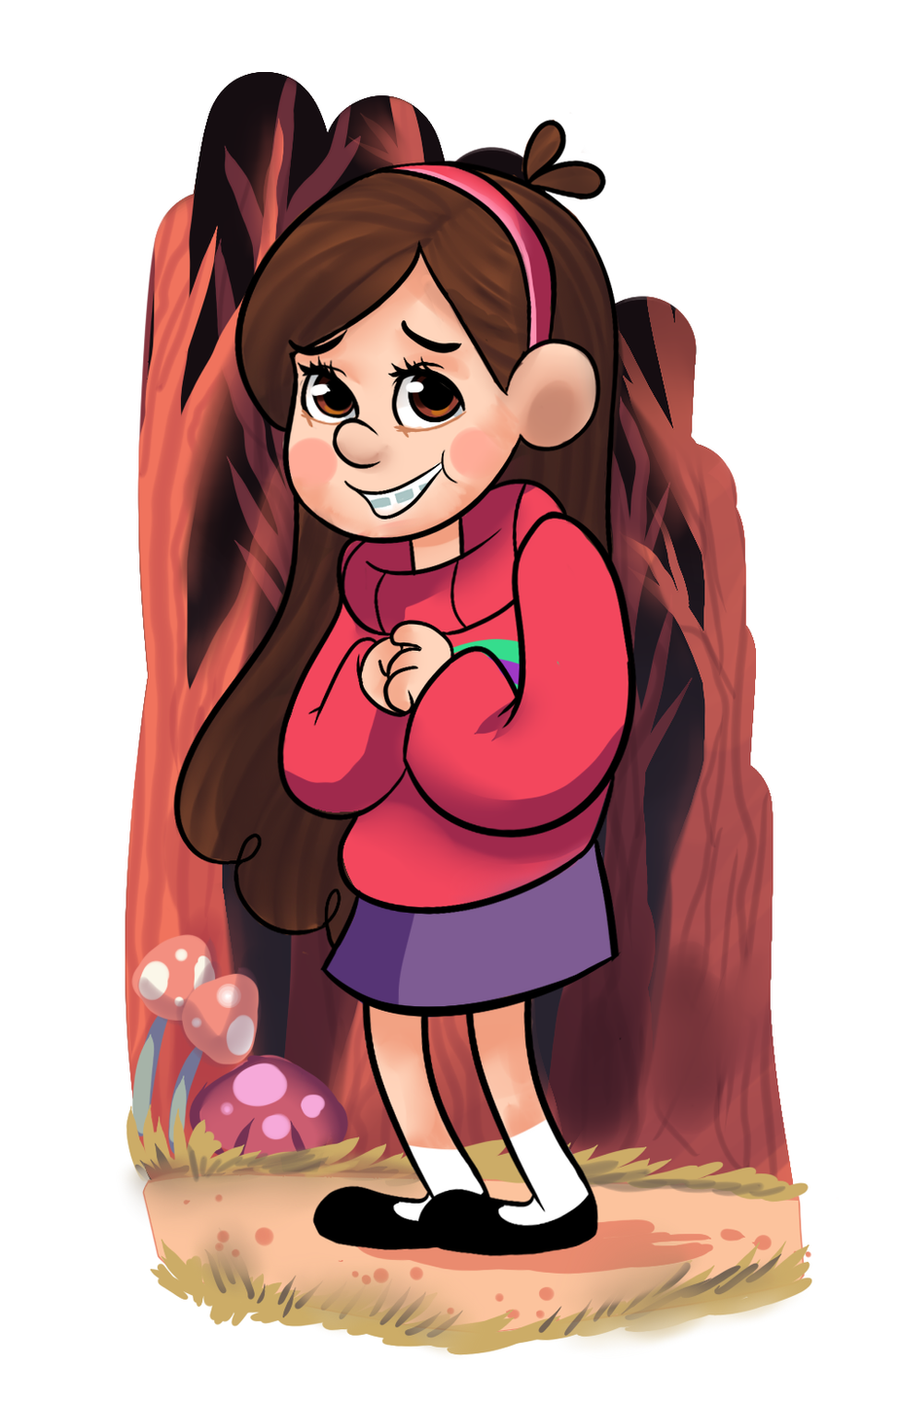 Gravity Falls: Mabel Pines by AninhaT-T